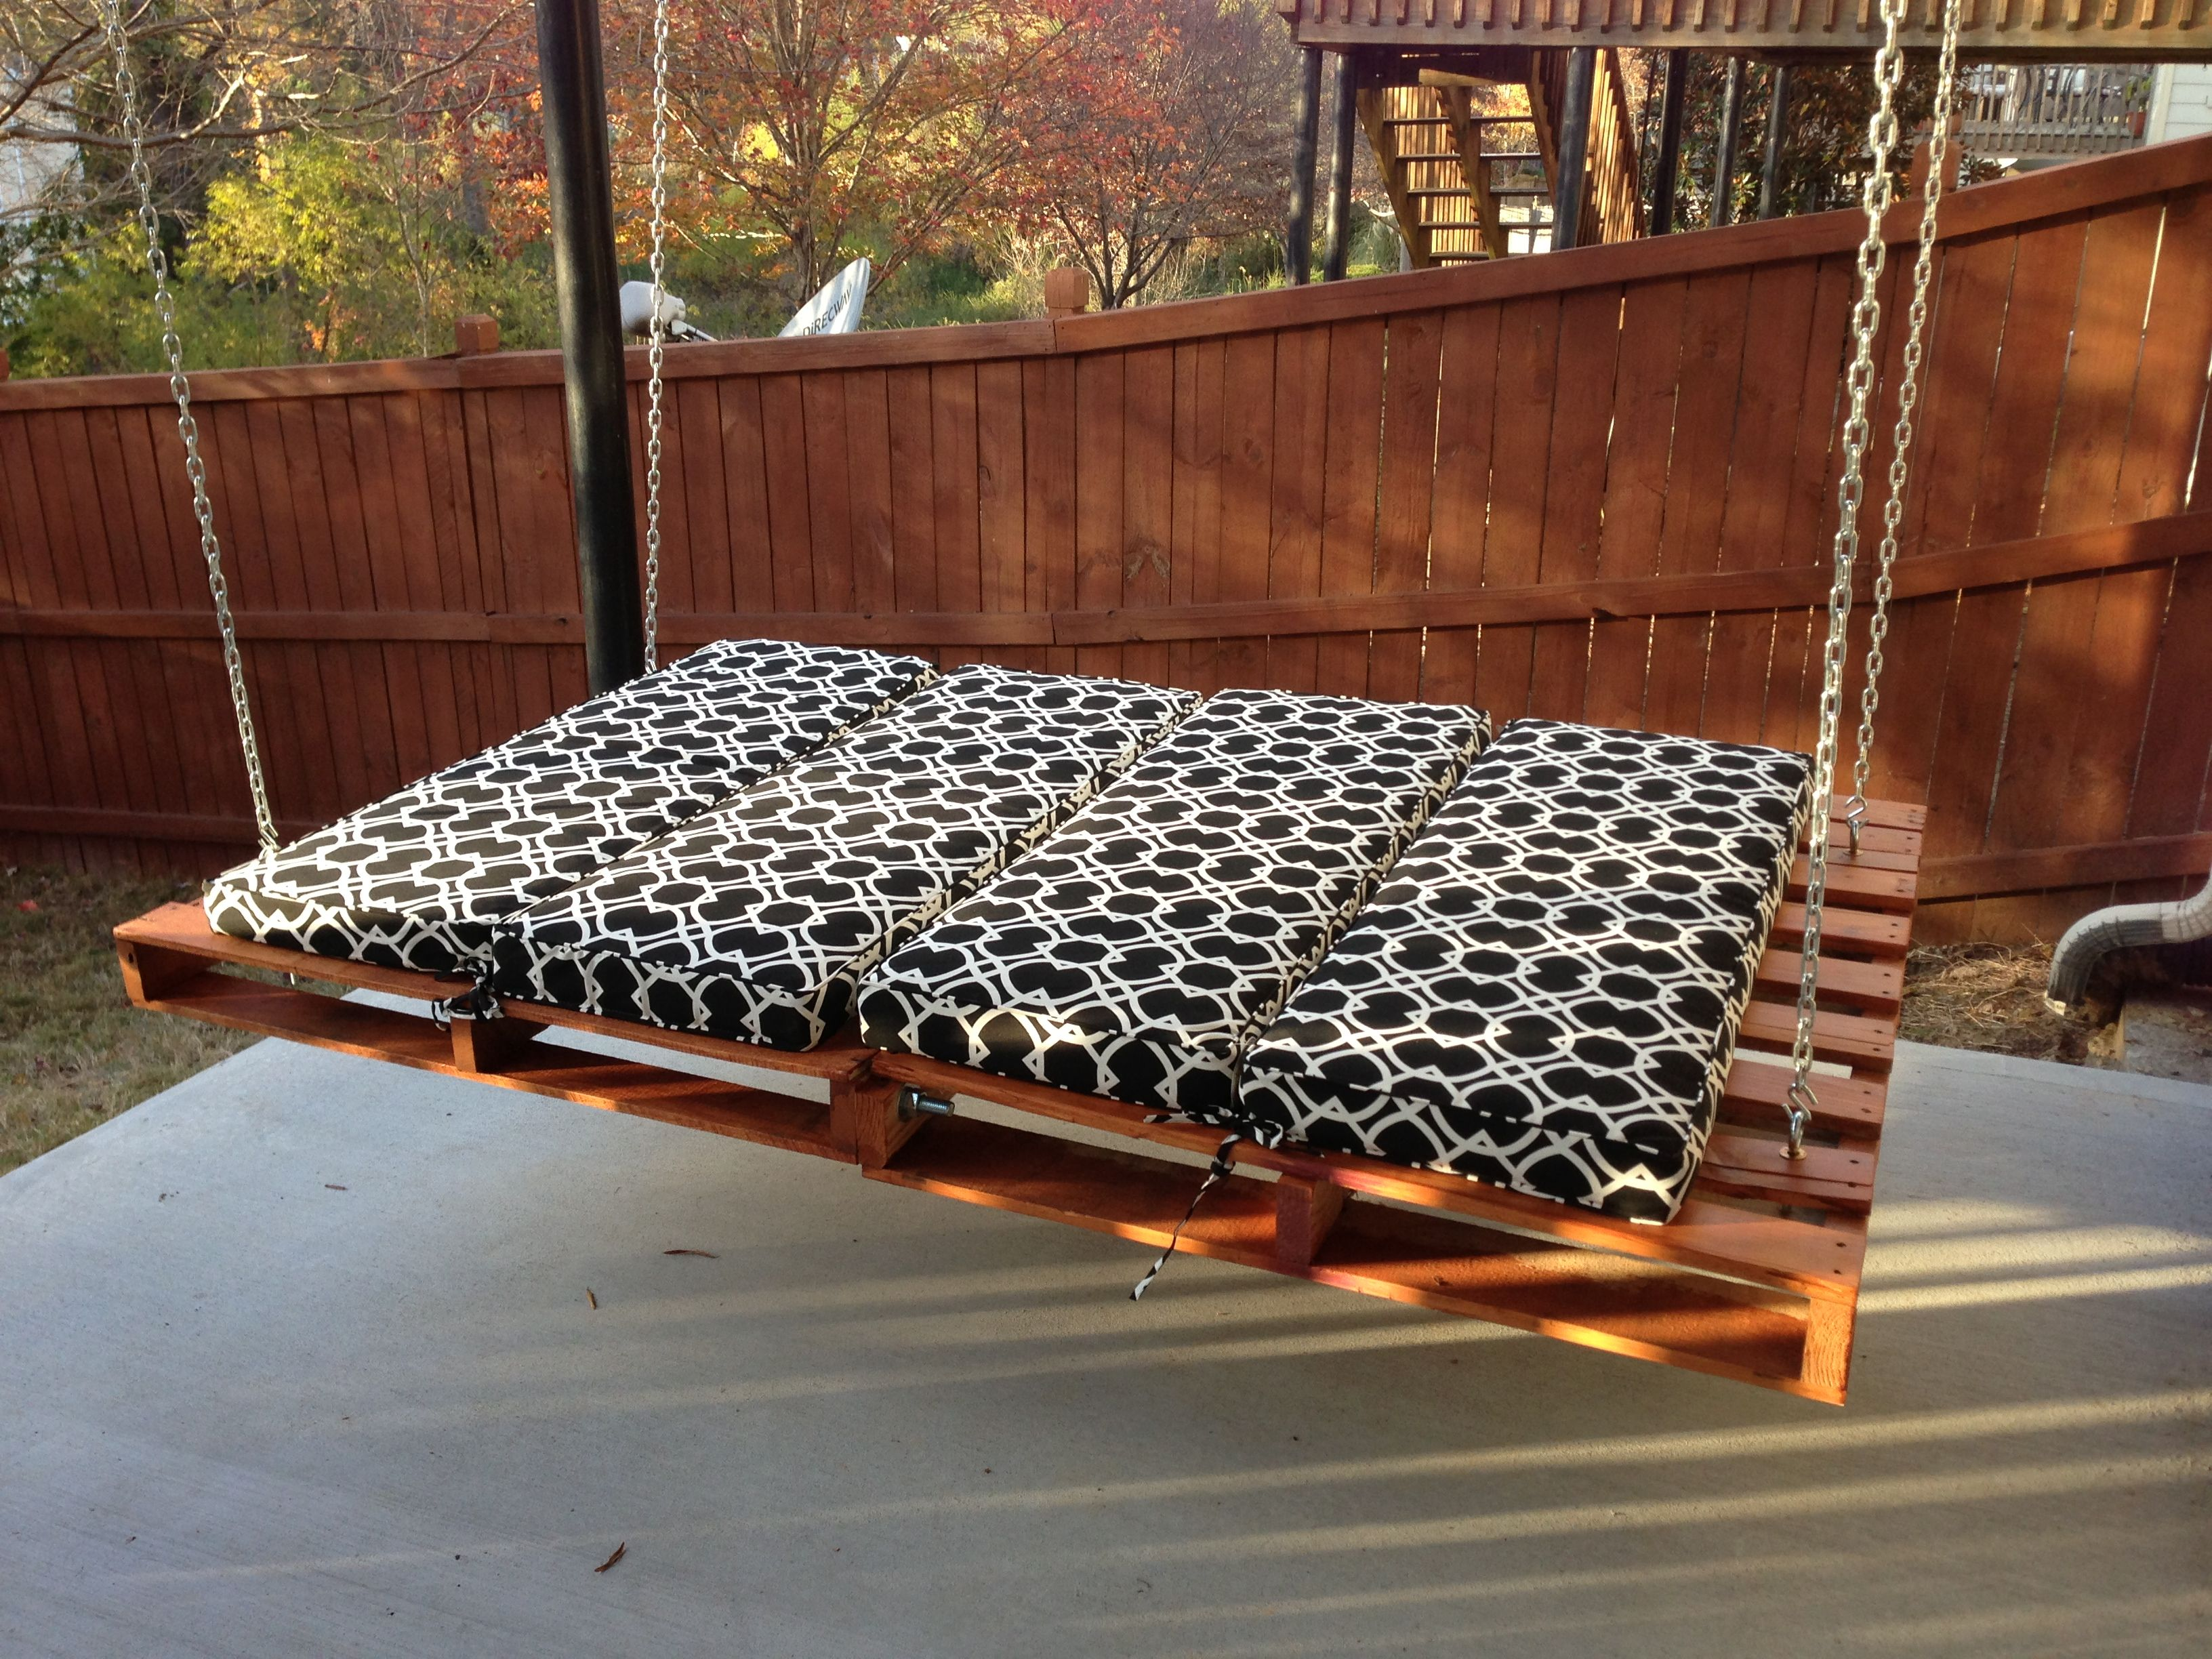 Diy outdoor hanging bed - Classy Relaxing Hanging Beds With Wooden Fencing As Decorate Backyard Patio Decor Ideas